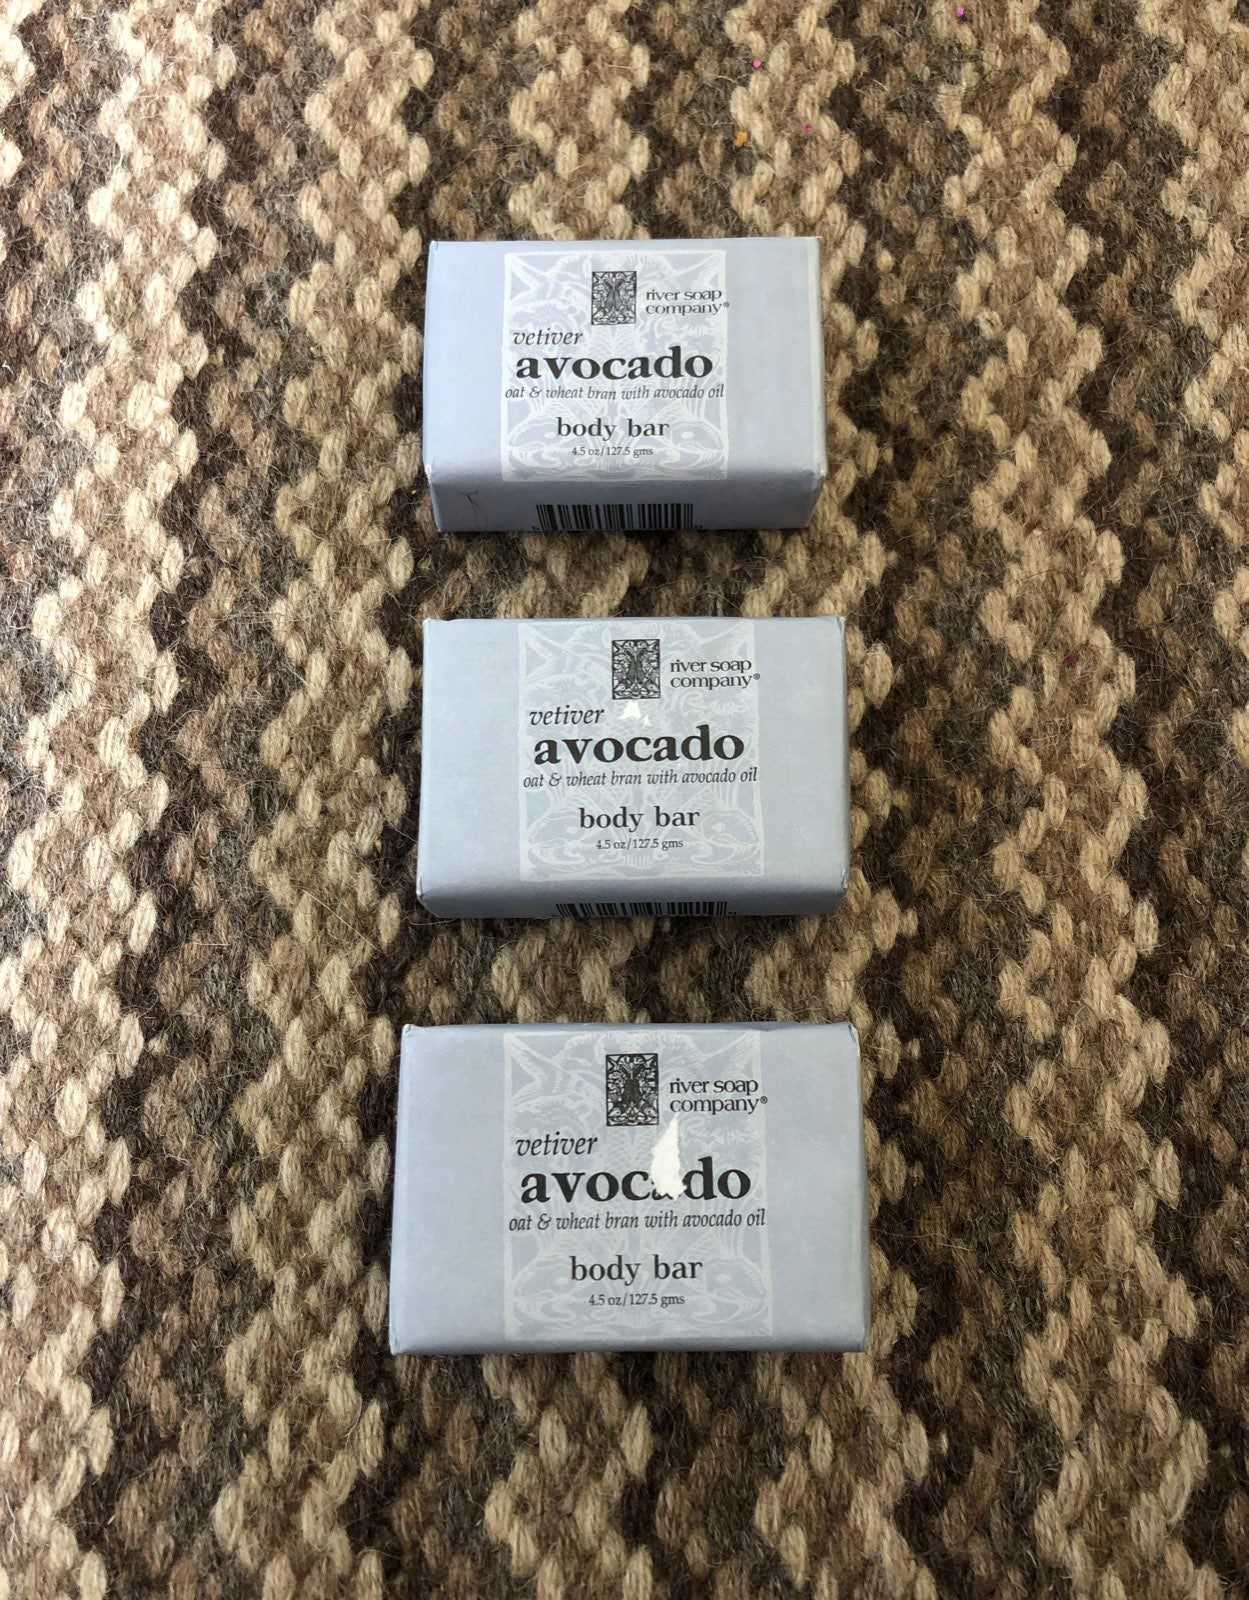 River soap company avocado body bar